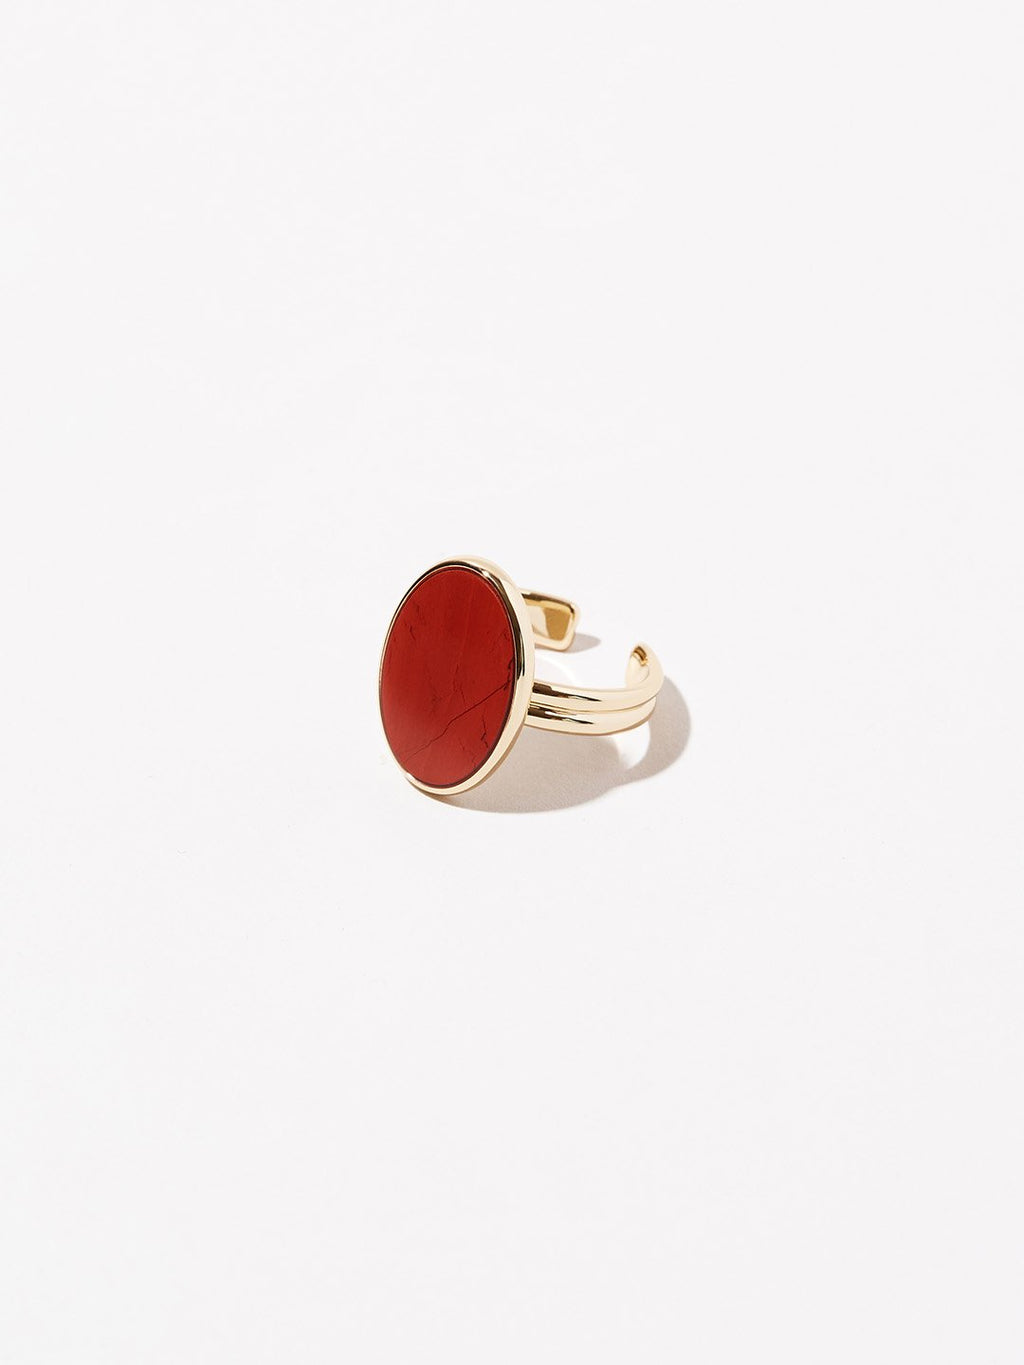 Oval Stone Ring - Mara Red Jasper